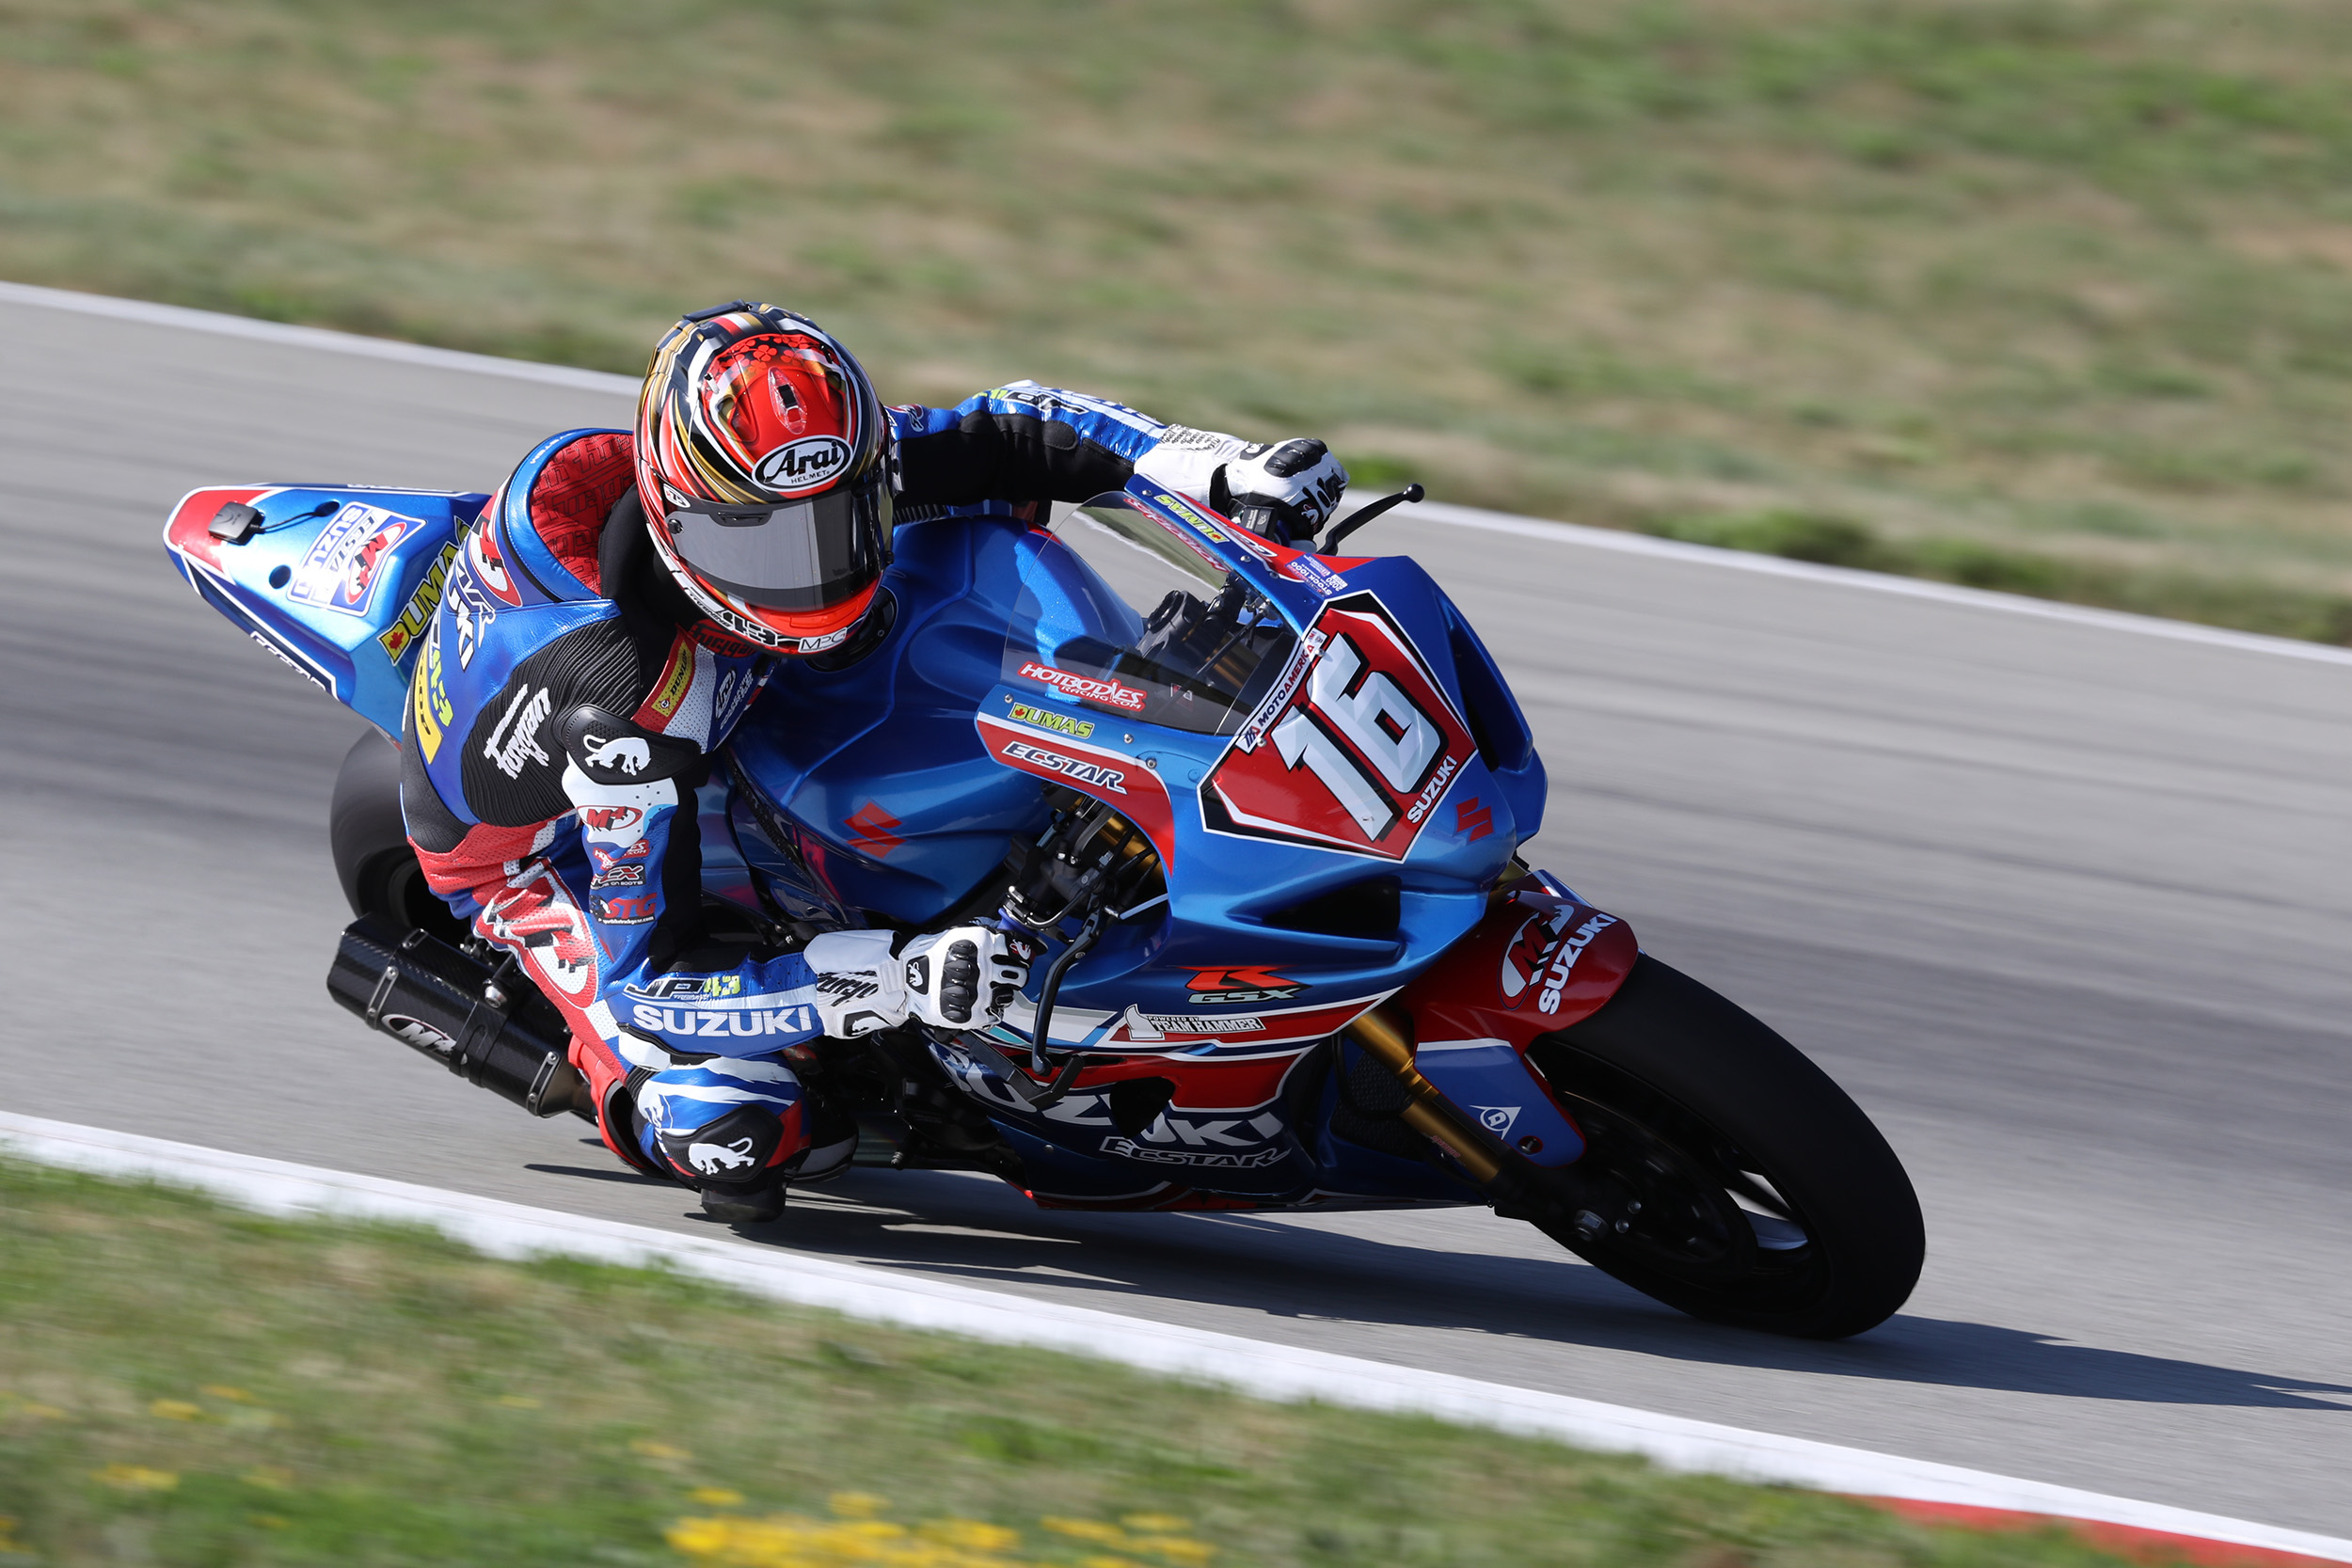 Alex Dumas (#16) nearly won the first Stock 1000 race and made his Superbike debut